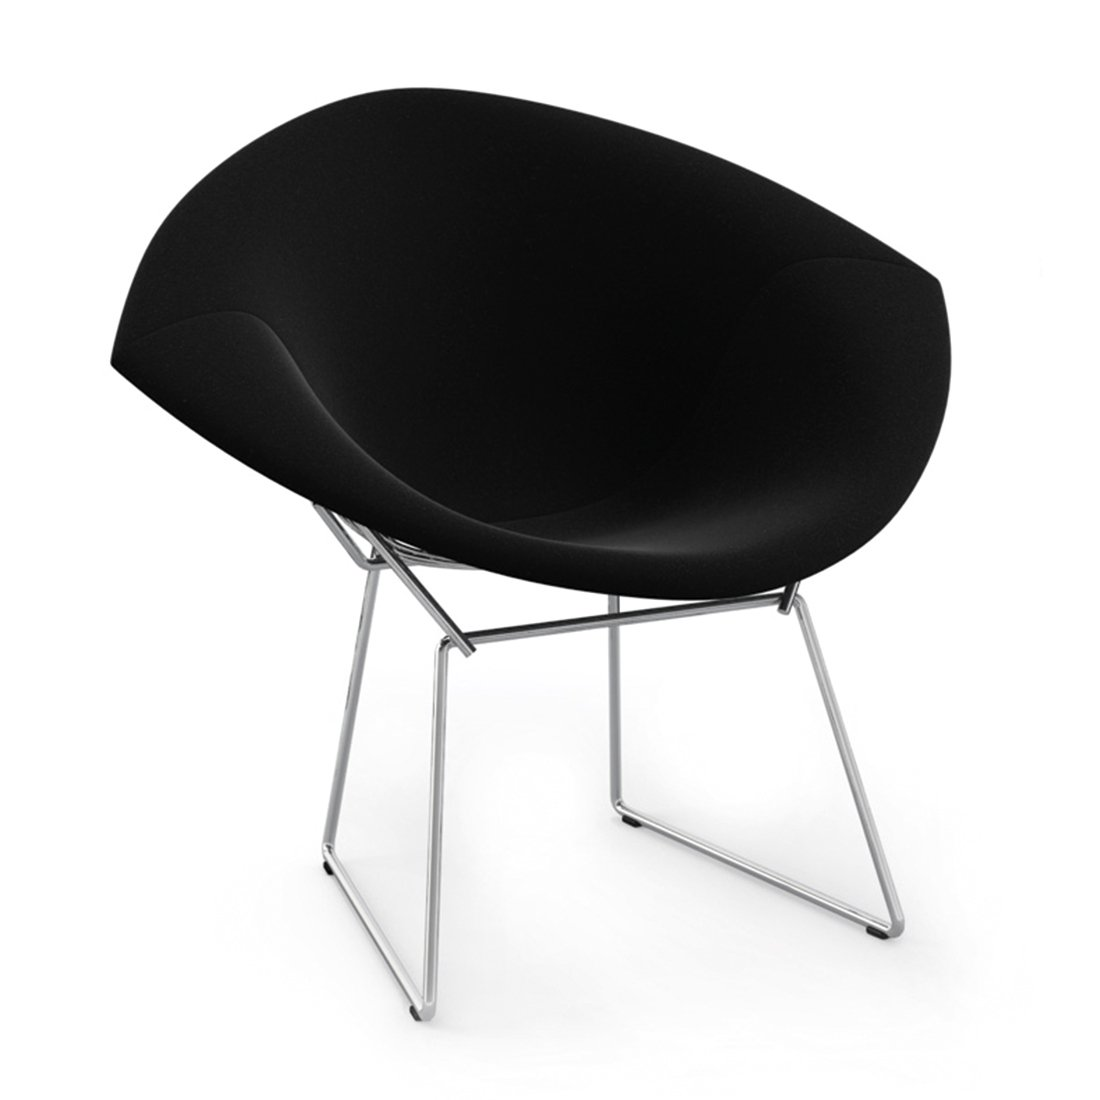 Knoll Diamond Lounge Chair Chroom Full UP - Ultrasuede Black Onyx